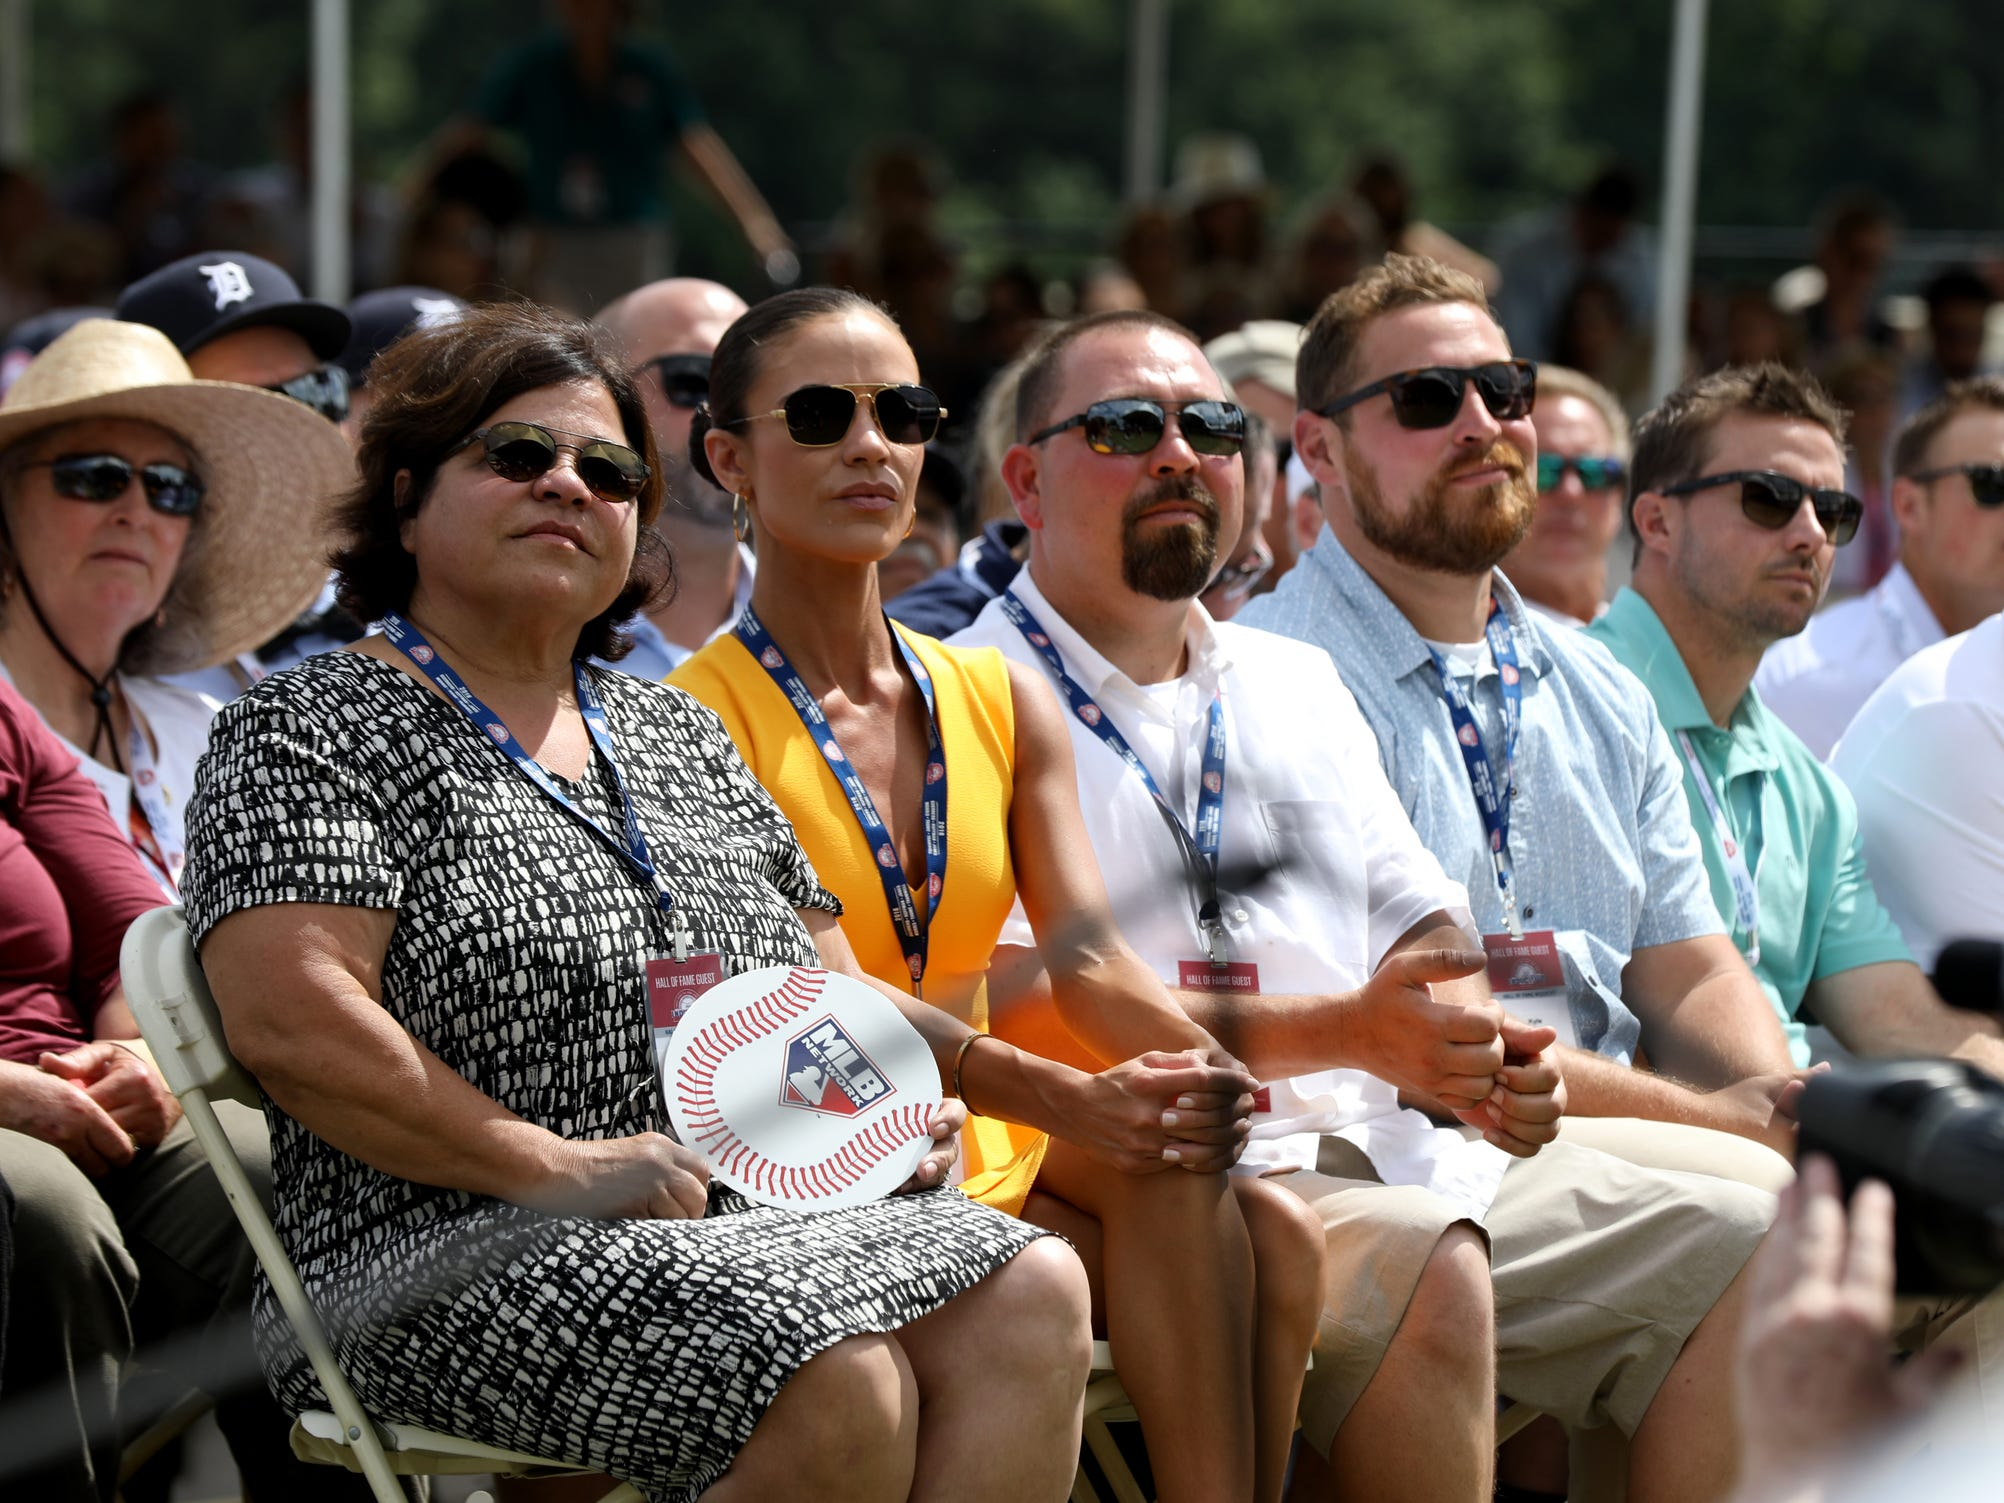 Barbara Trammell, left, listens to the Hall of Fame speech of her husband and former Detroit Tigers star Alan Trammell at the Clark Sports Center after the National Baseball Hall of Fame induction ceremony in Cooperstown, N.Y. on Sunday, July 29, 2018.